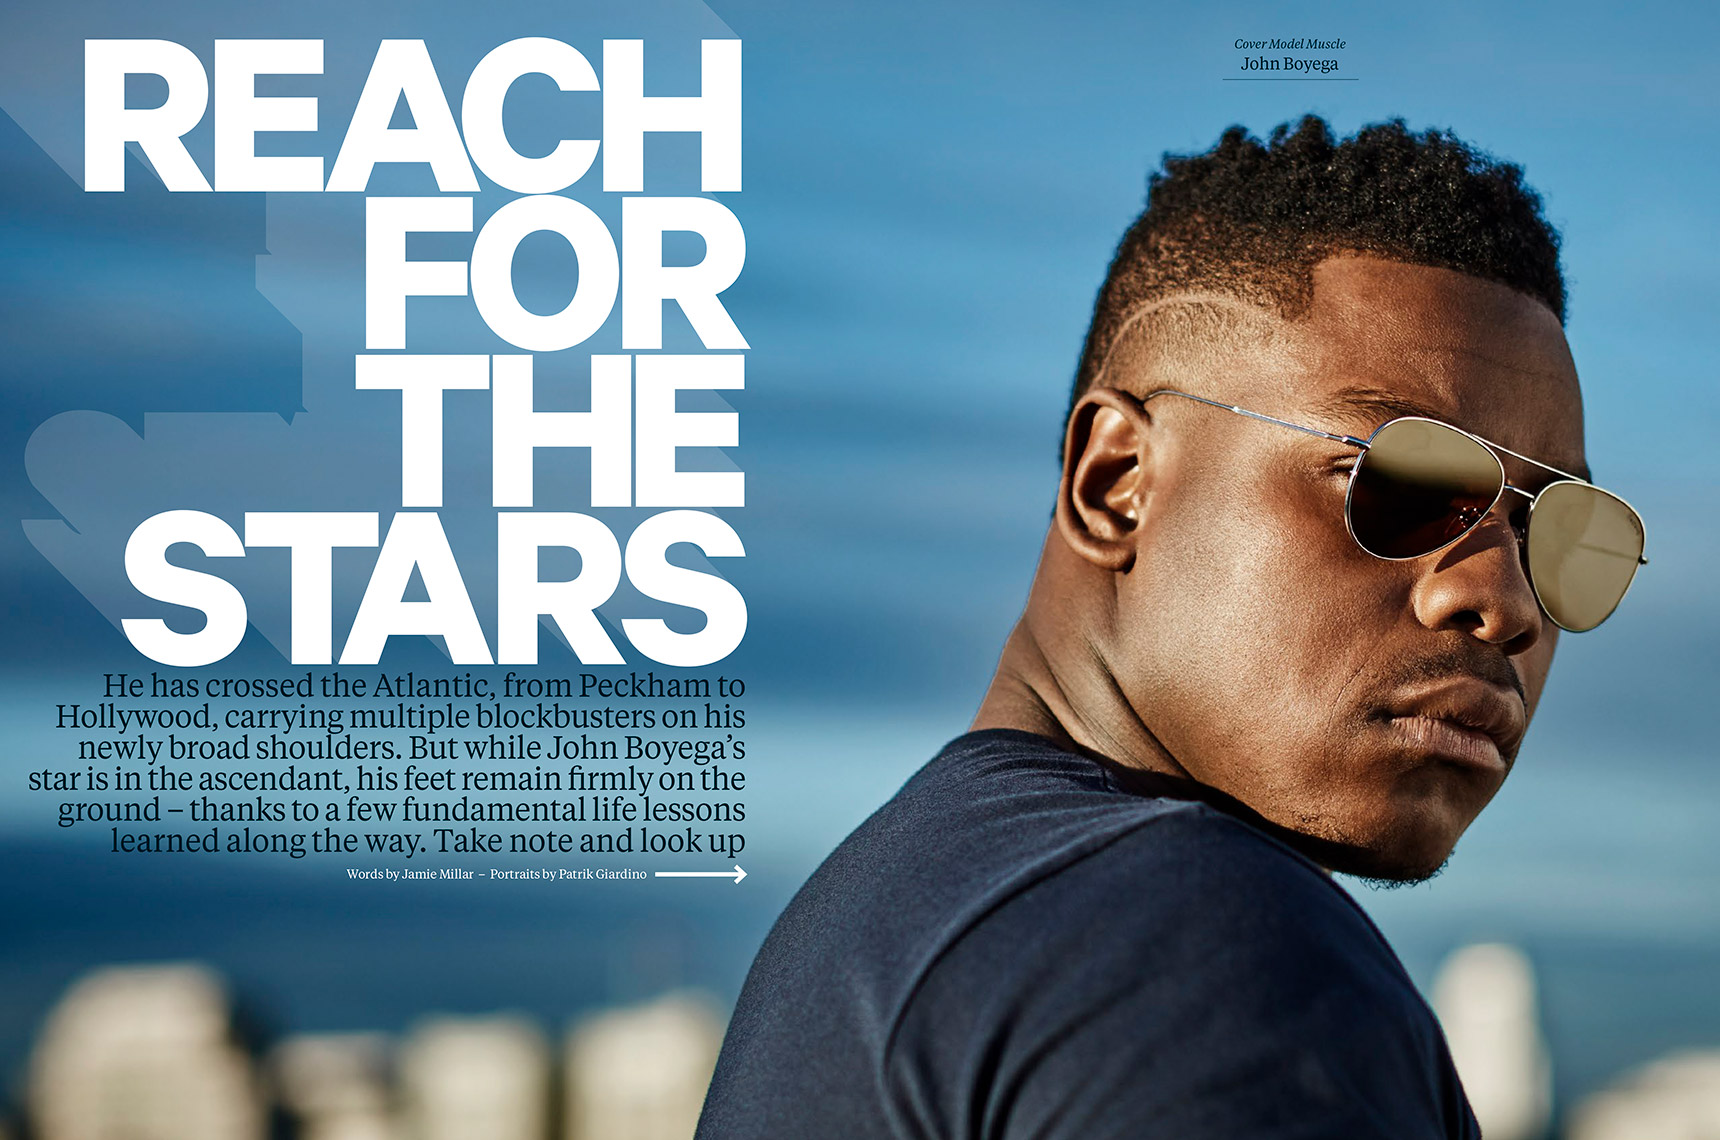 COVER-MODEL-MUSCLE-John-Boyega_pdf_spread-1